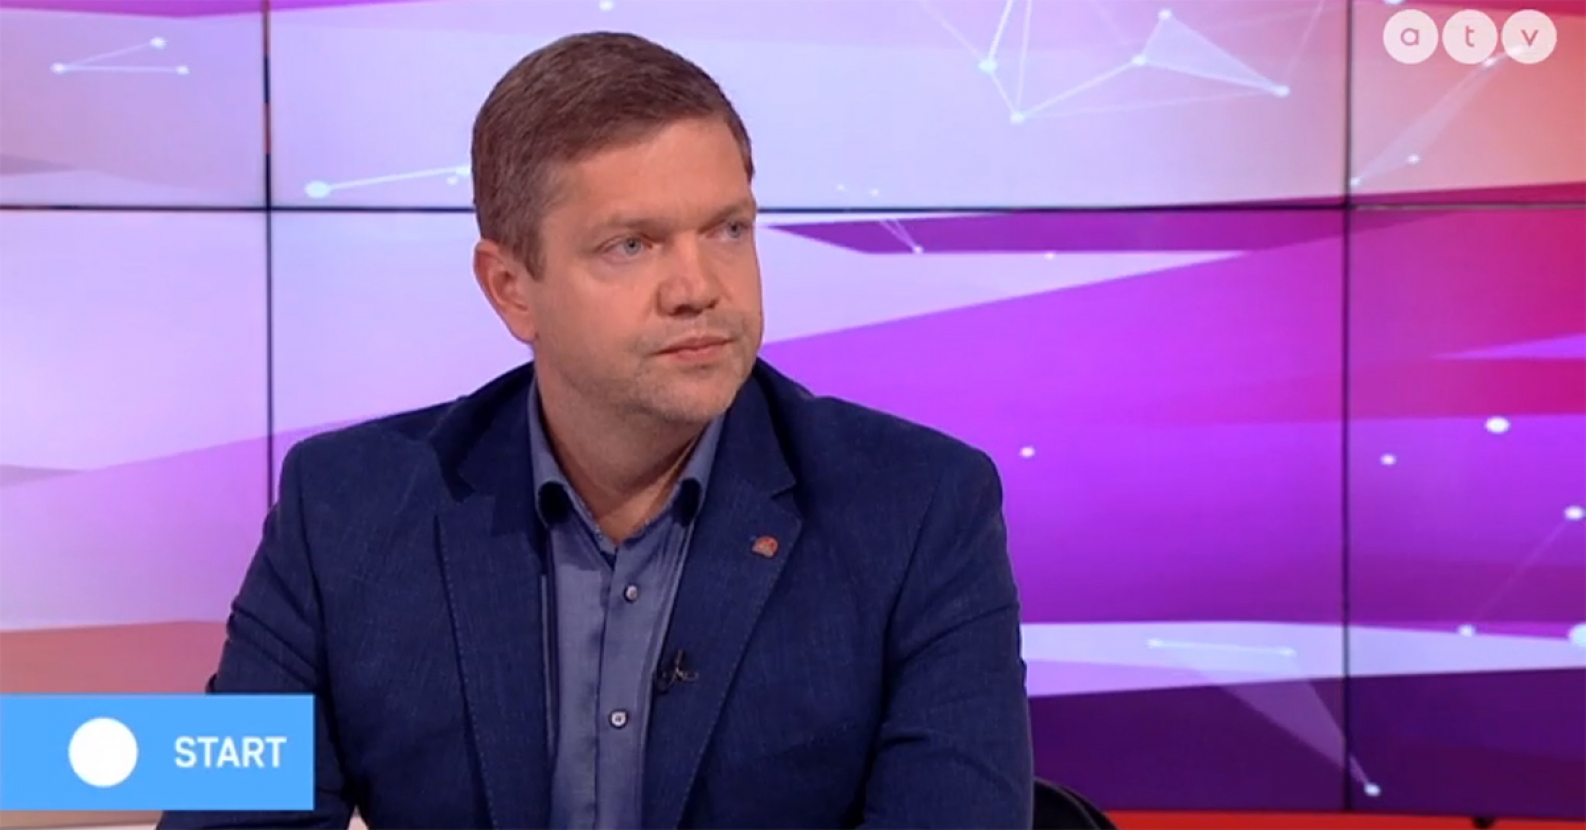 MSZP's Proposals Aimed at Preventing Loss of Income